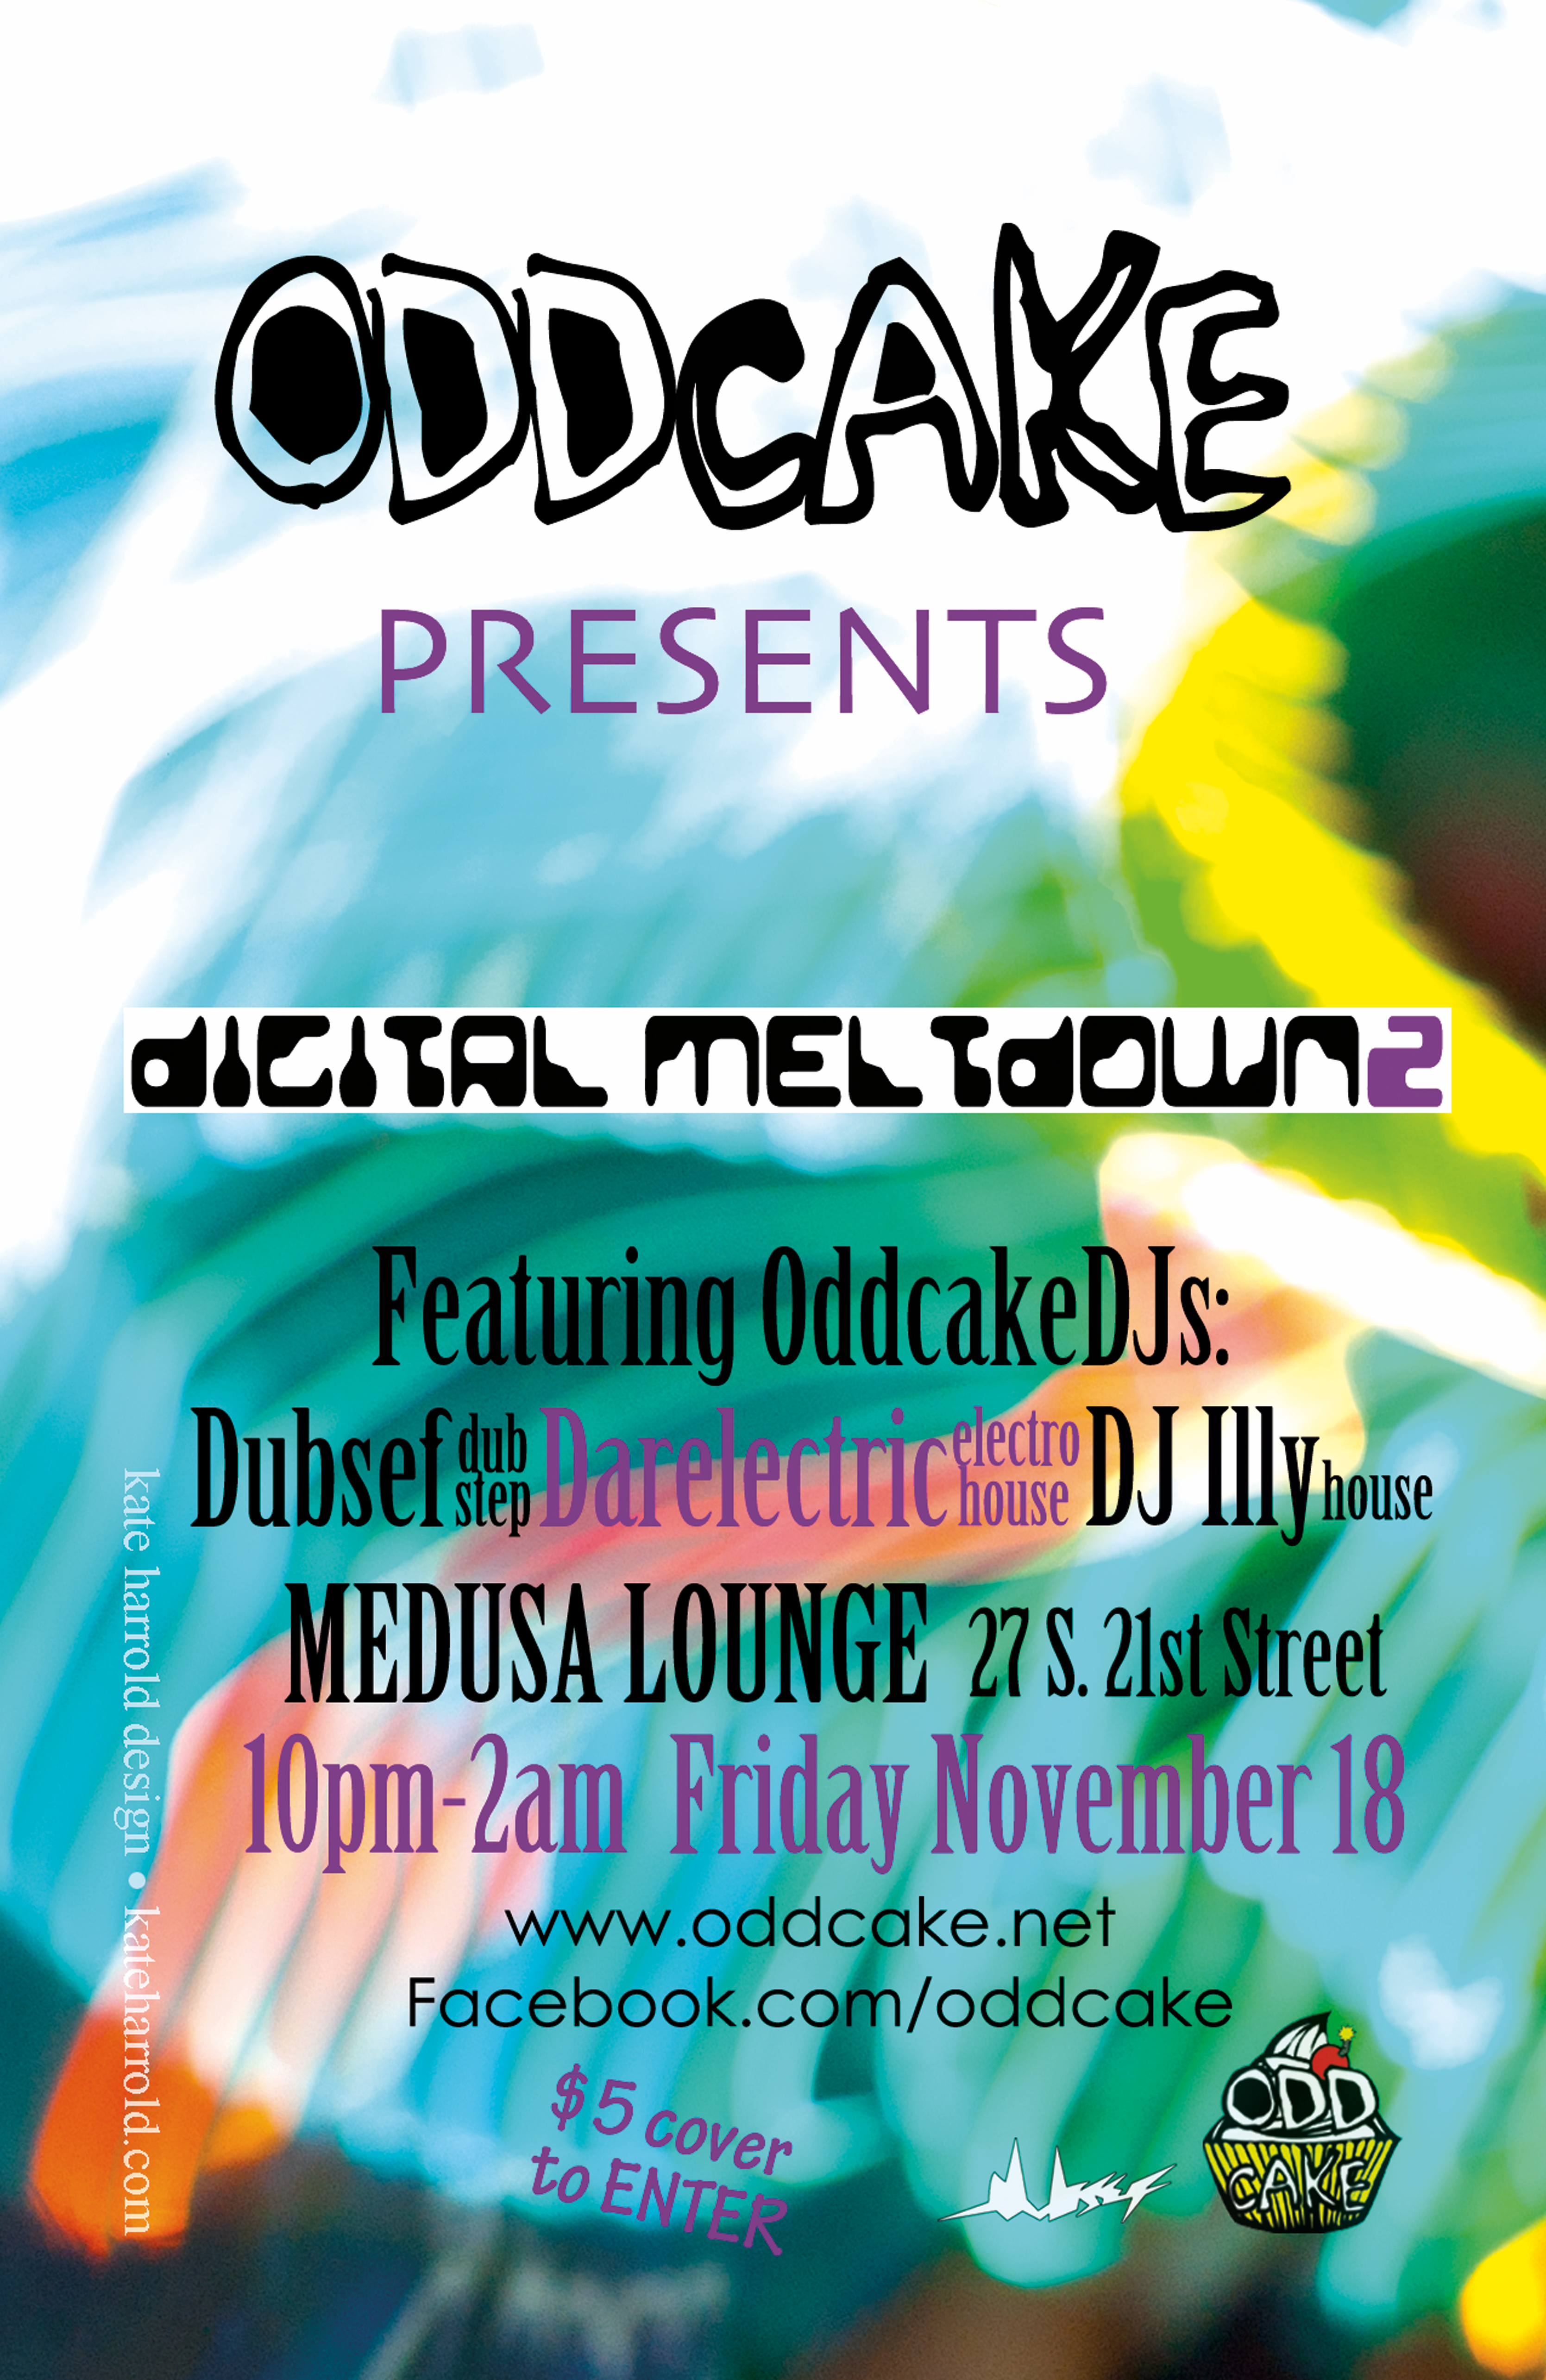 OddCake Presents - Digital Meltdown 2 (Poster)